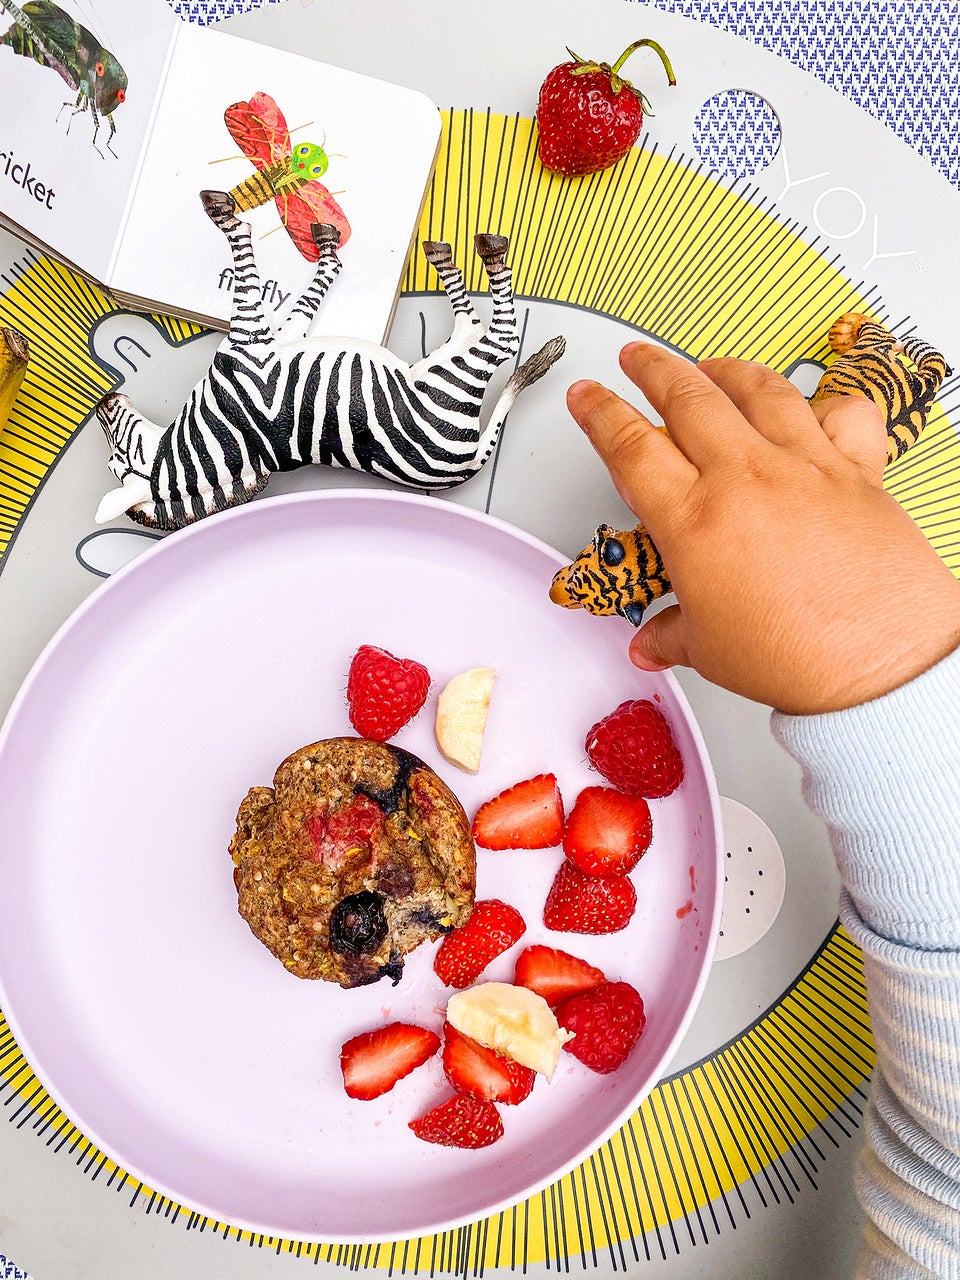 muffin on a pink plate with baby hand reaching for it